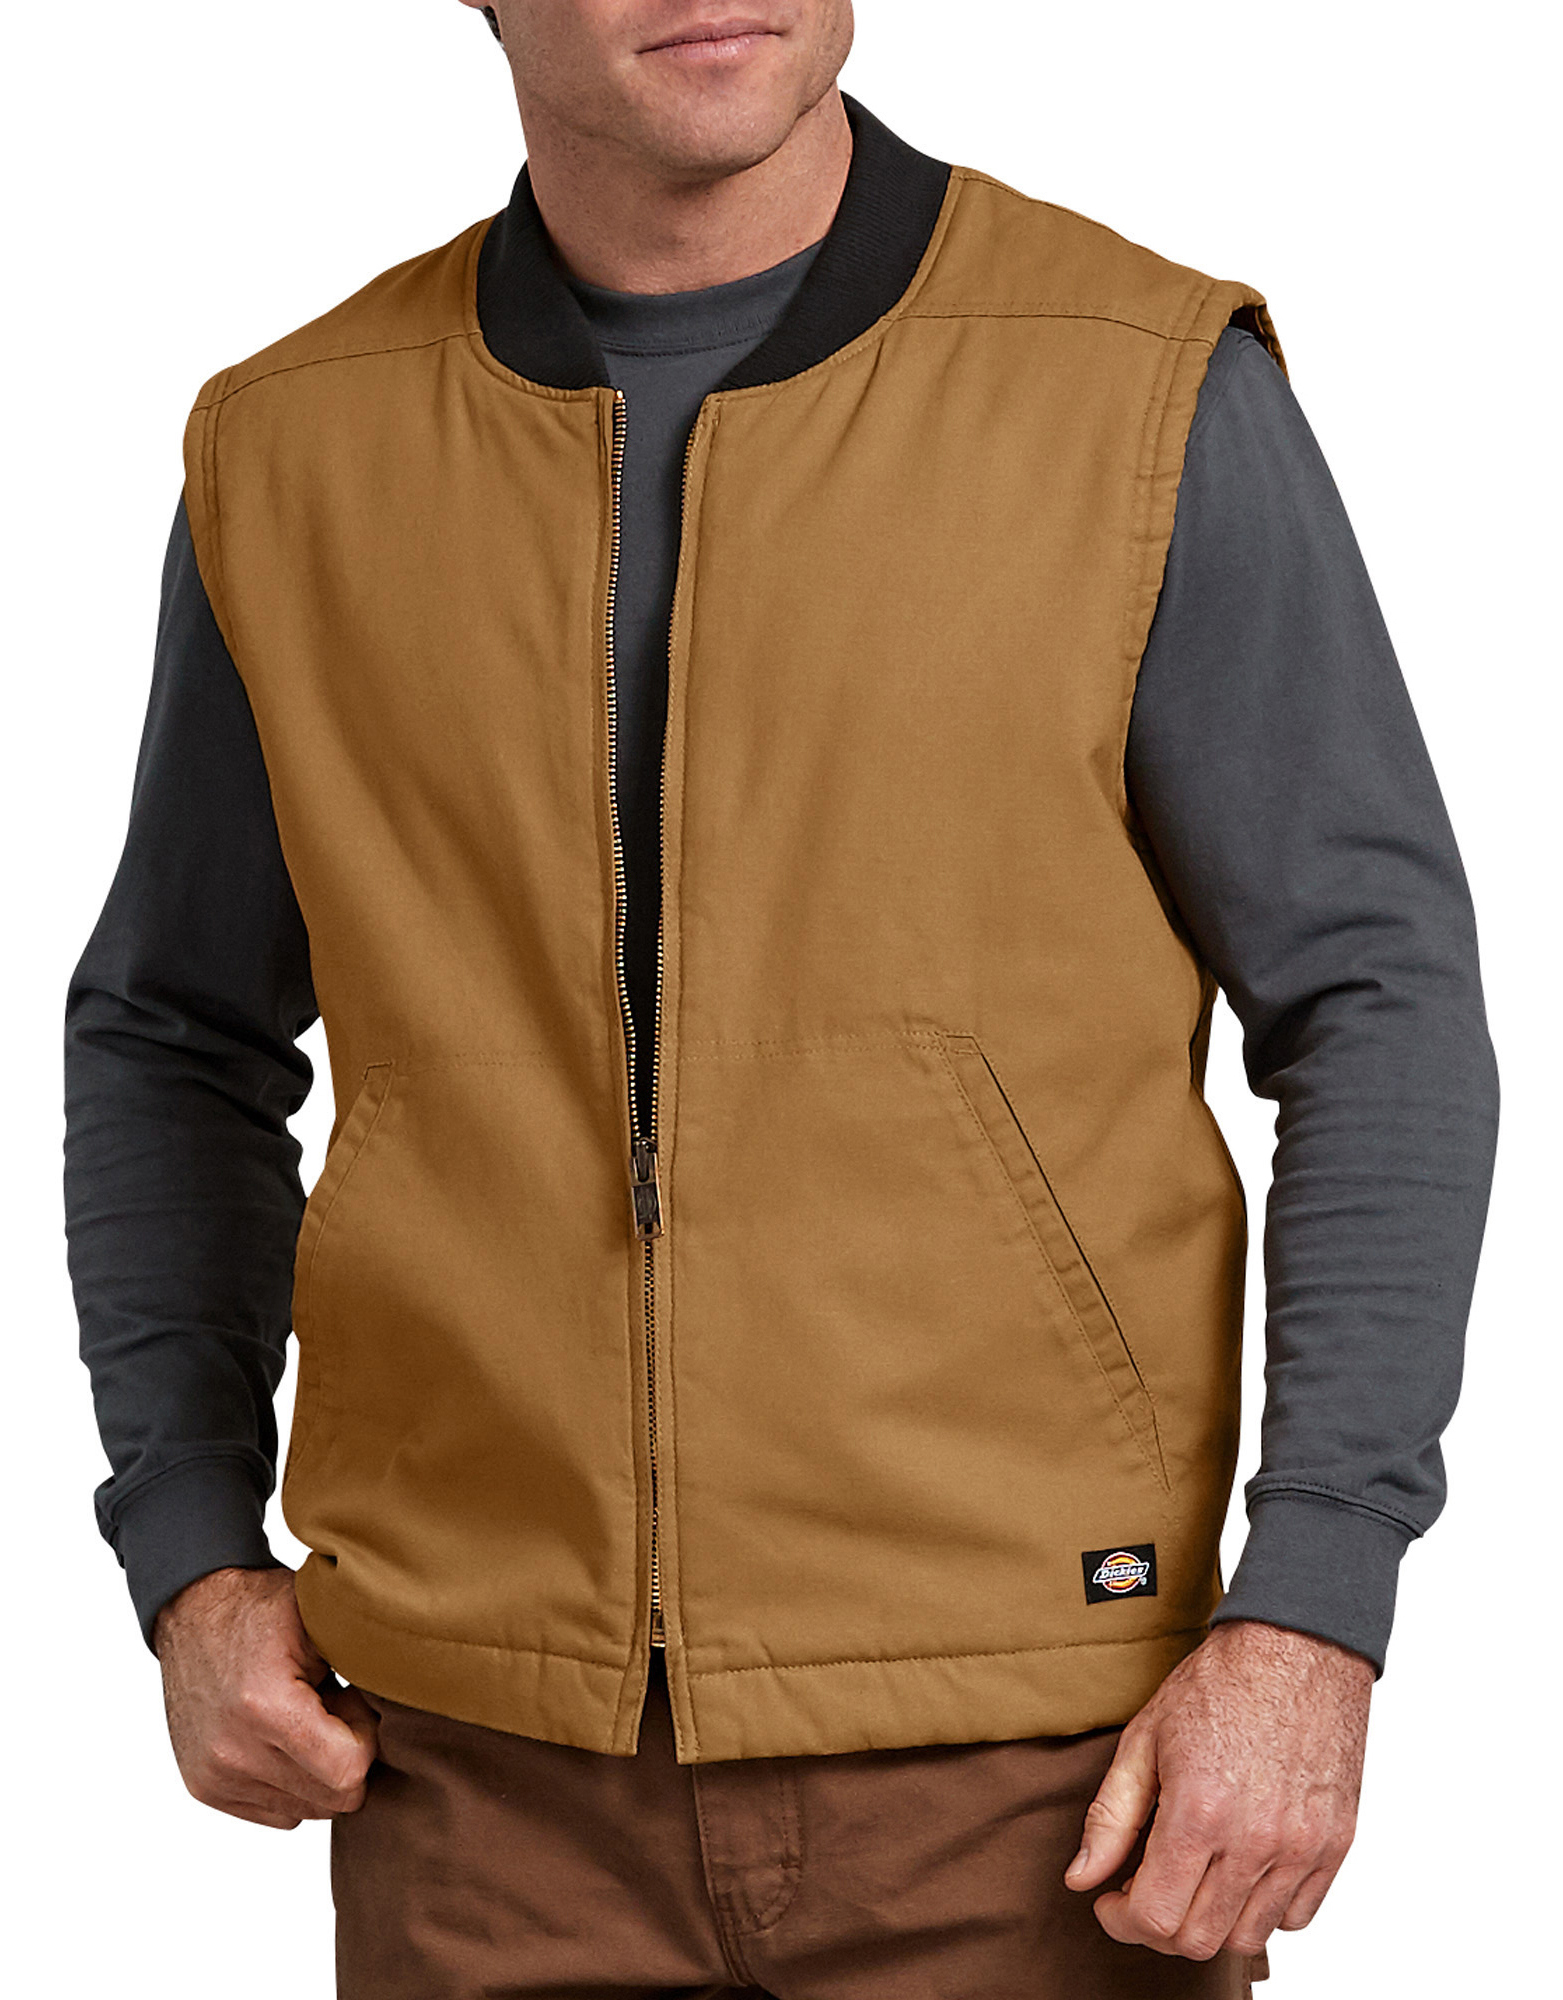 Sanded Duck Insulated Vest - Brown Duck (RBD)